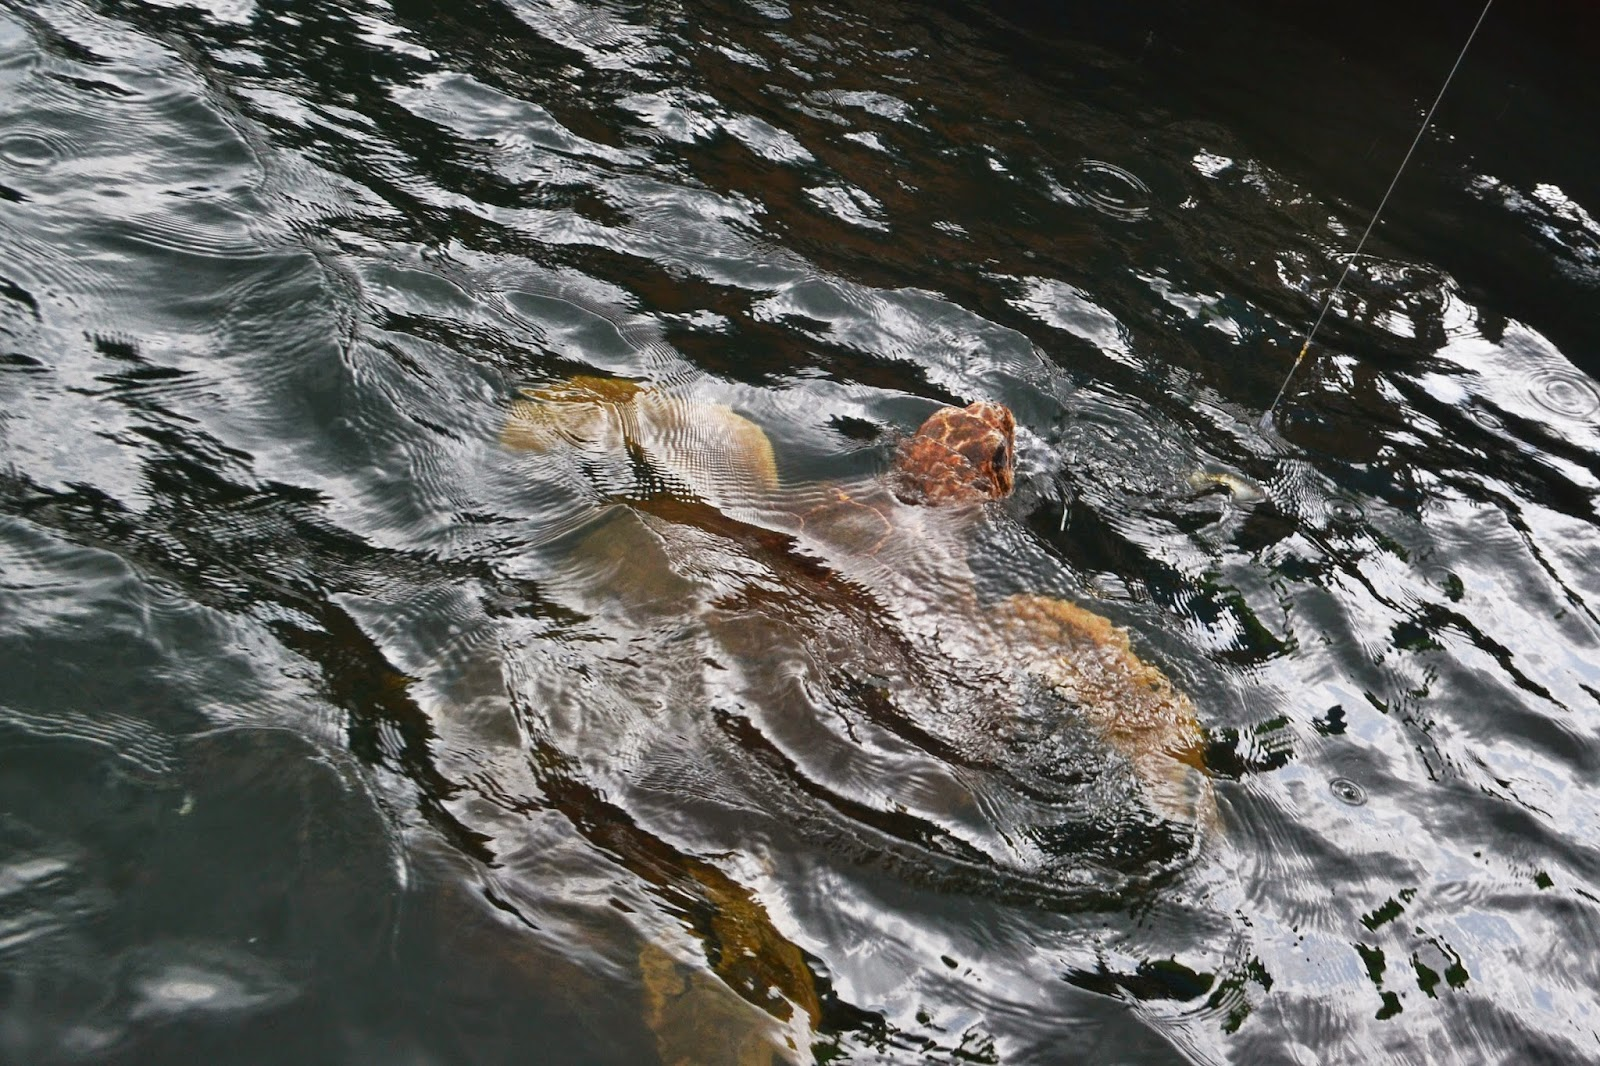 A turtle can be seen peeking out of the water